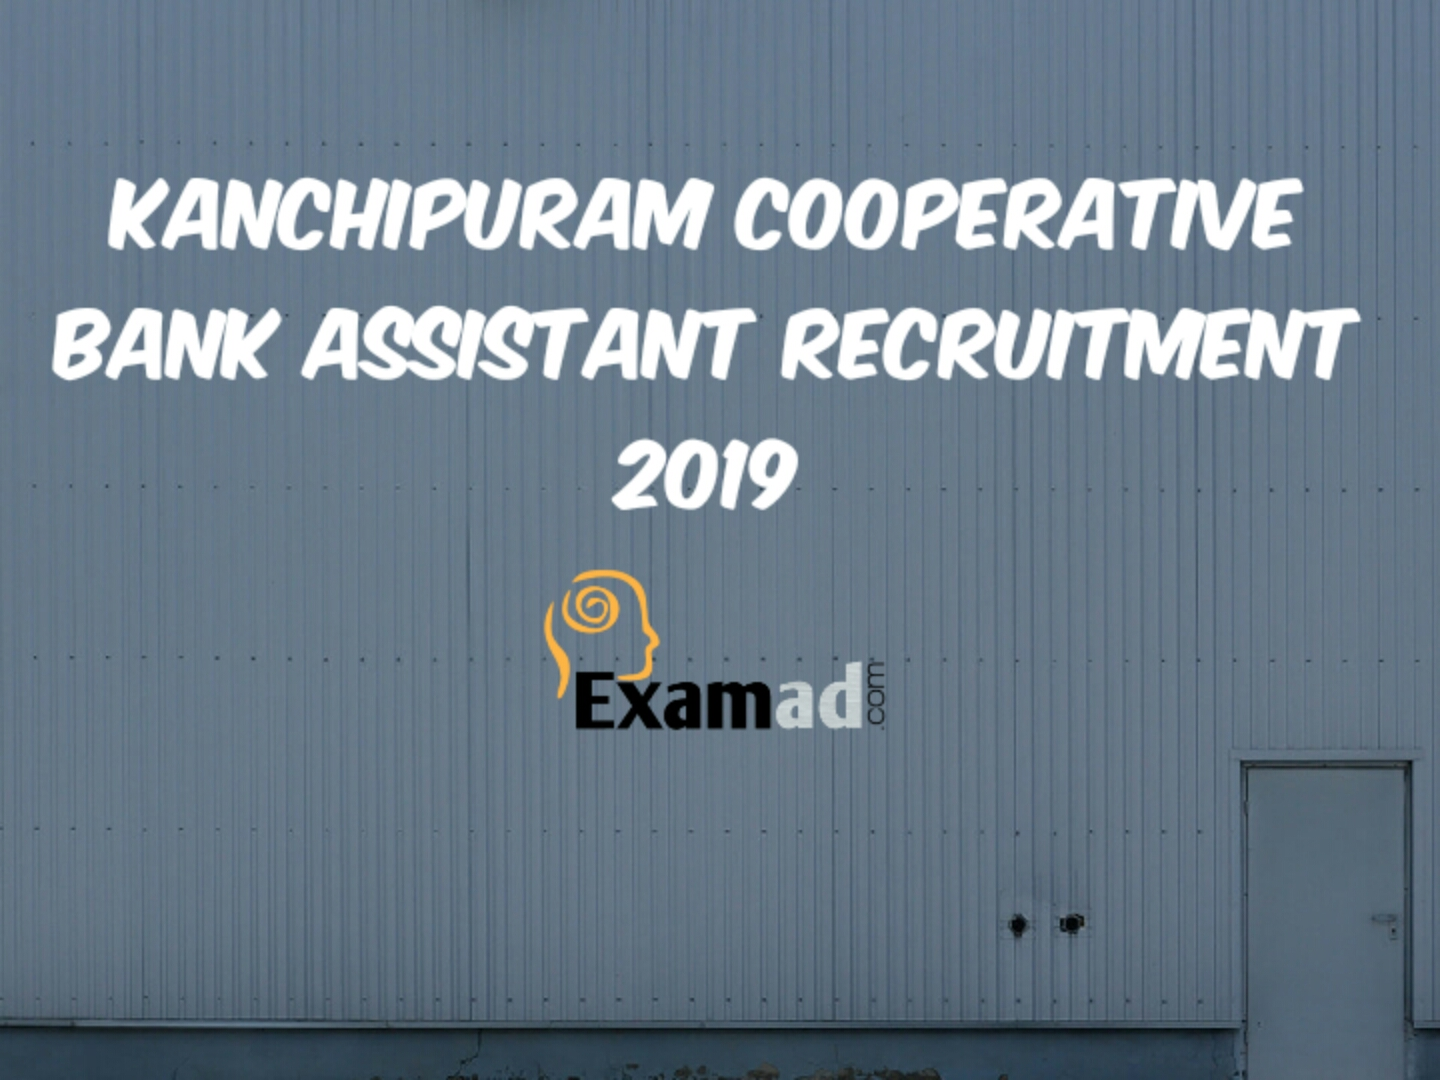 Kanchipuram Cooperative Bank Assistant Syllabus and Exam Pattern PDF Download